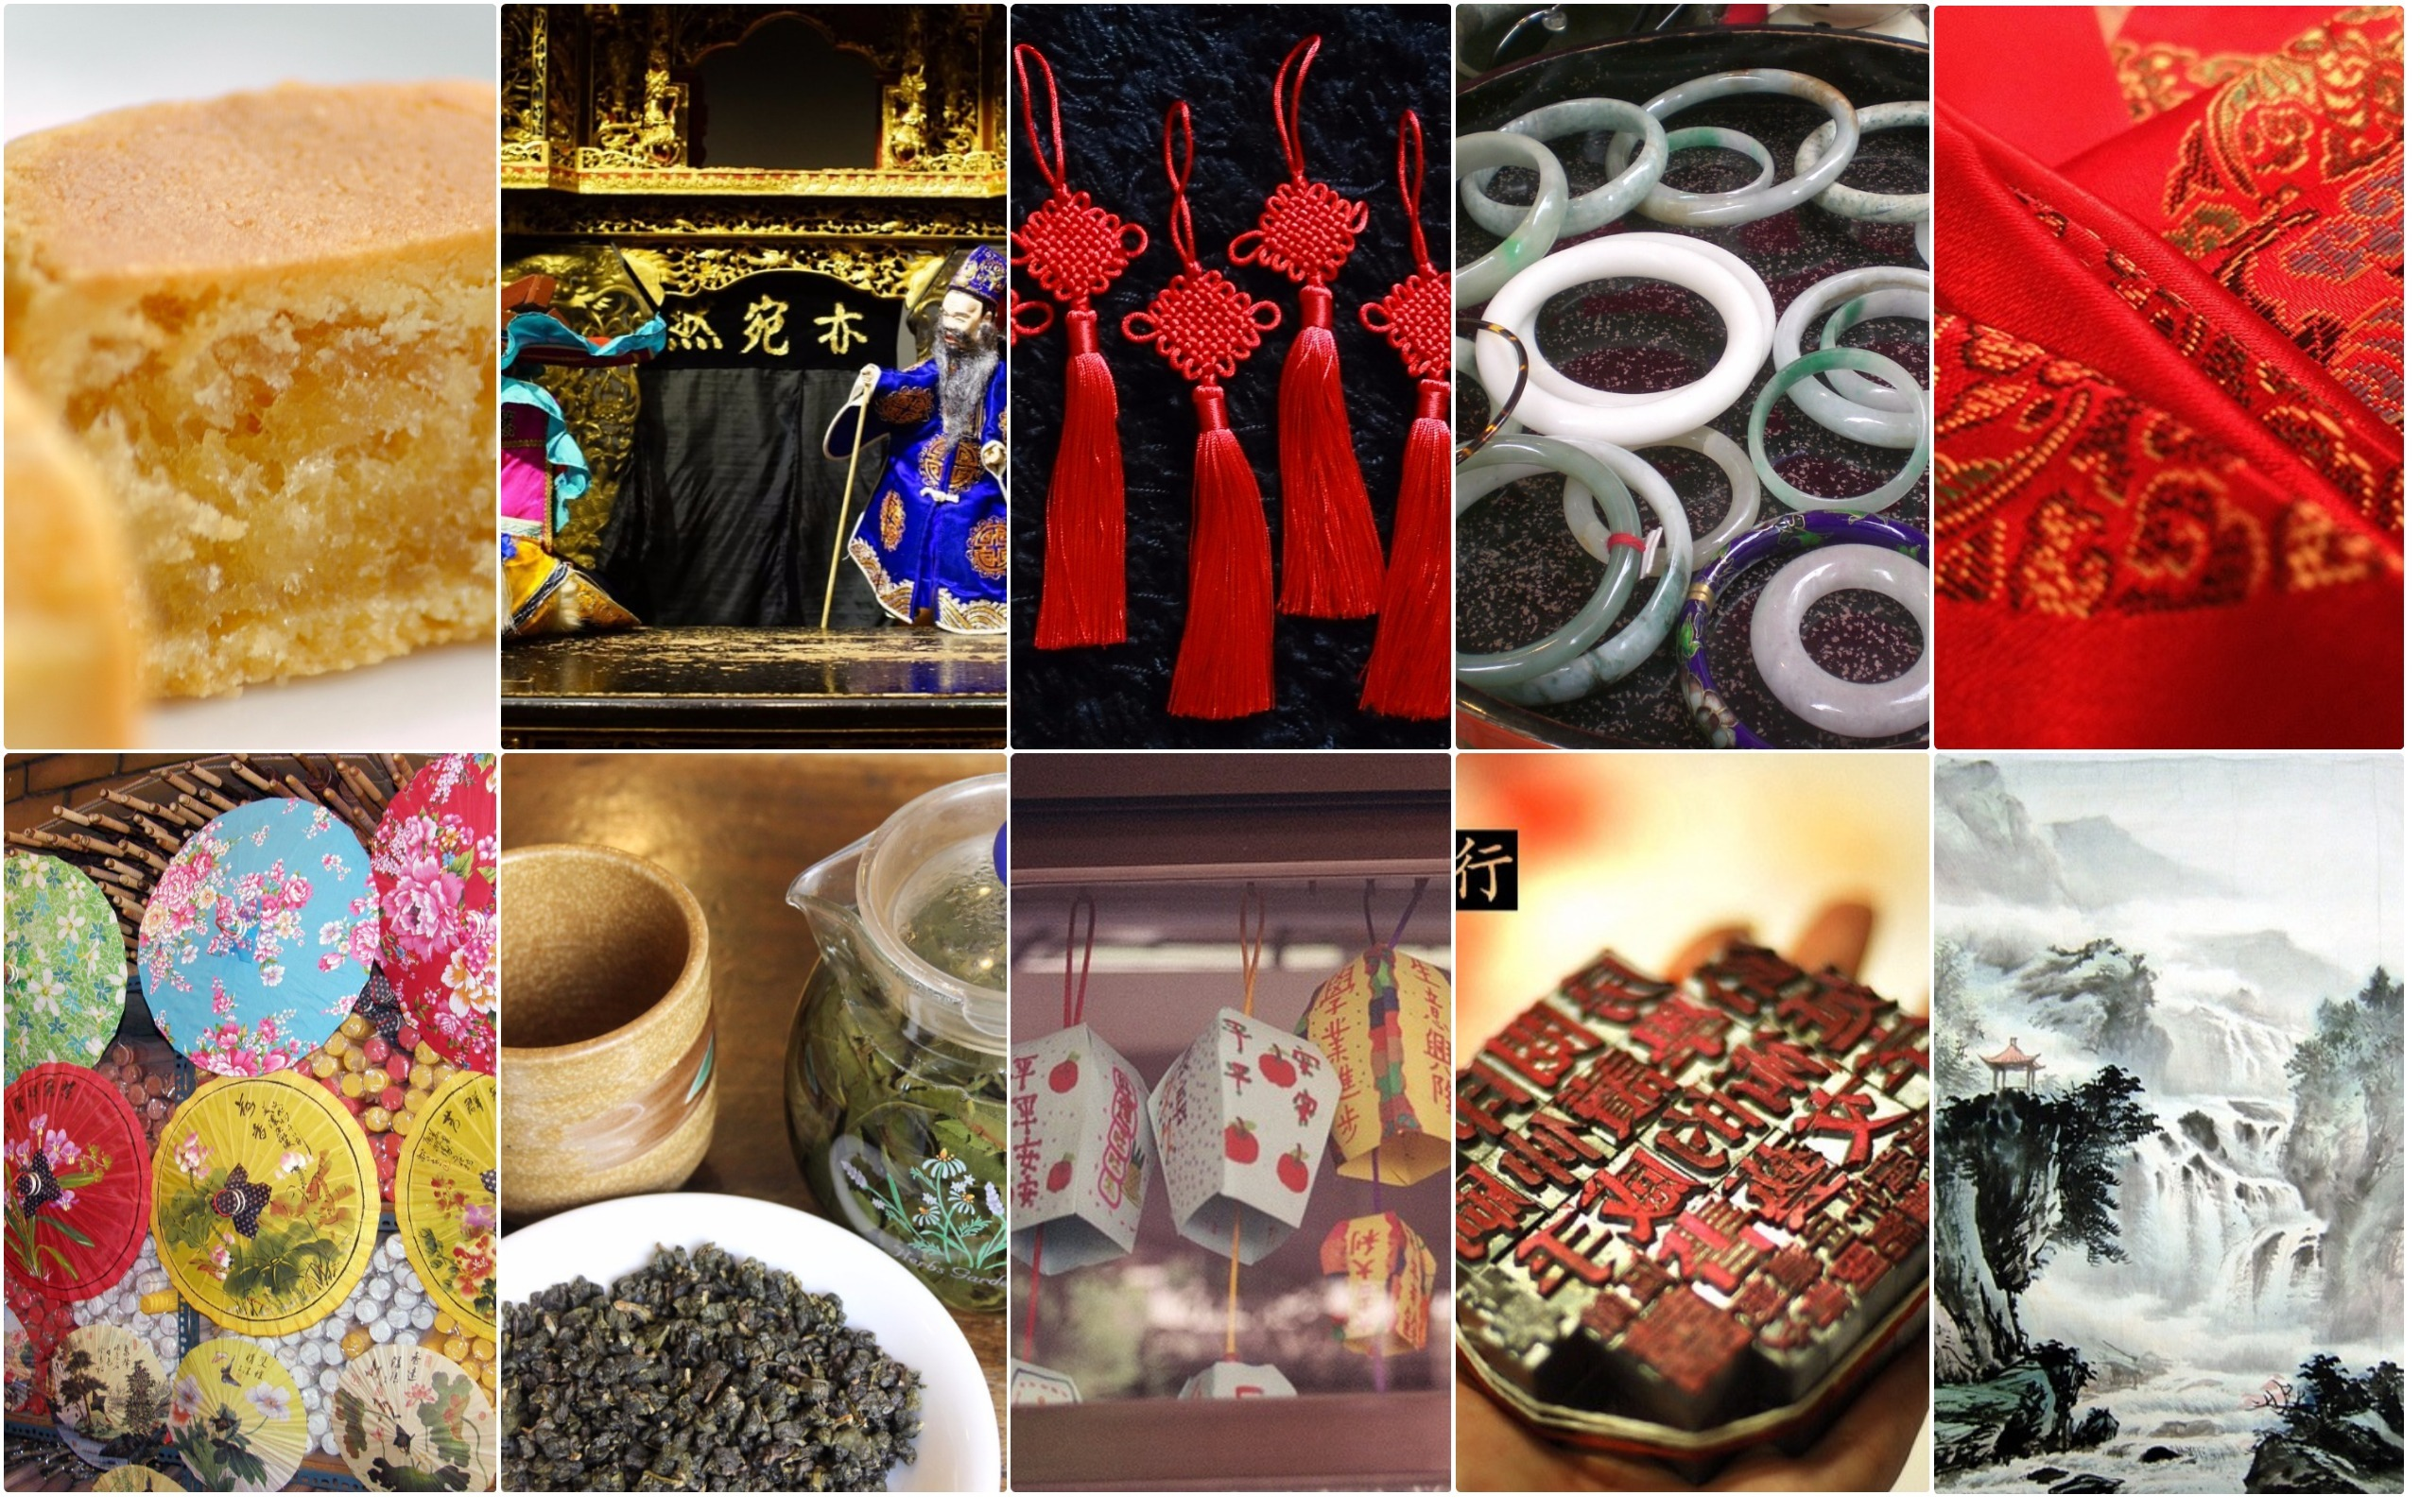 Souvenir Of Last Beautiful Day For >> 10 Best Souvenirs To Bring Back From Taipei Taiwan News